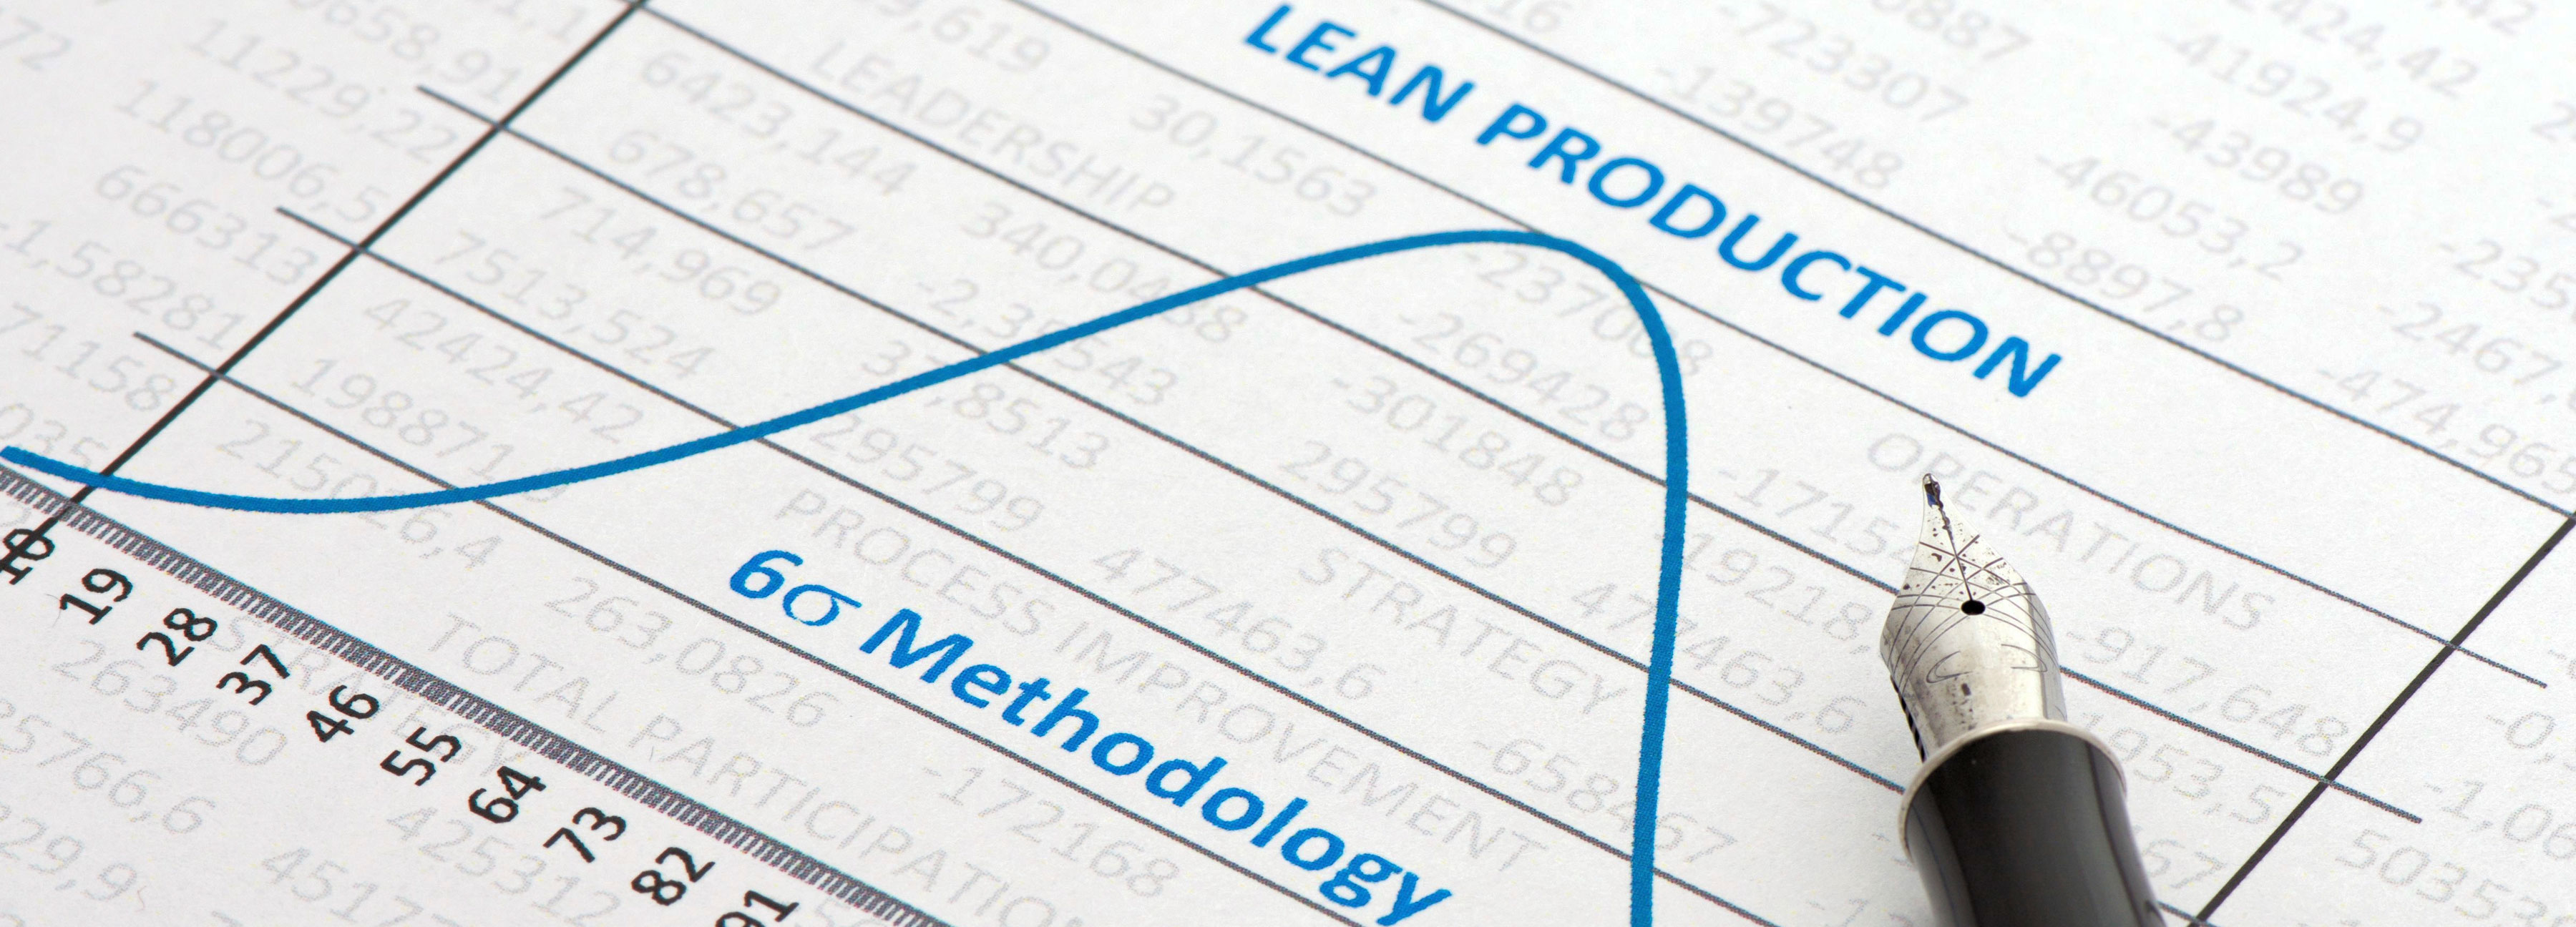 A chart displaying Lean data